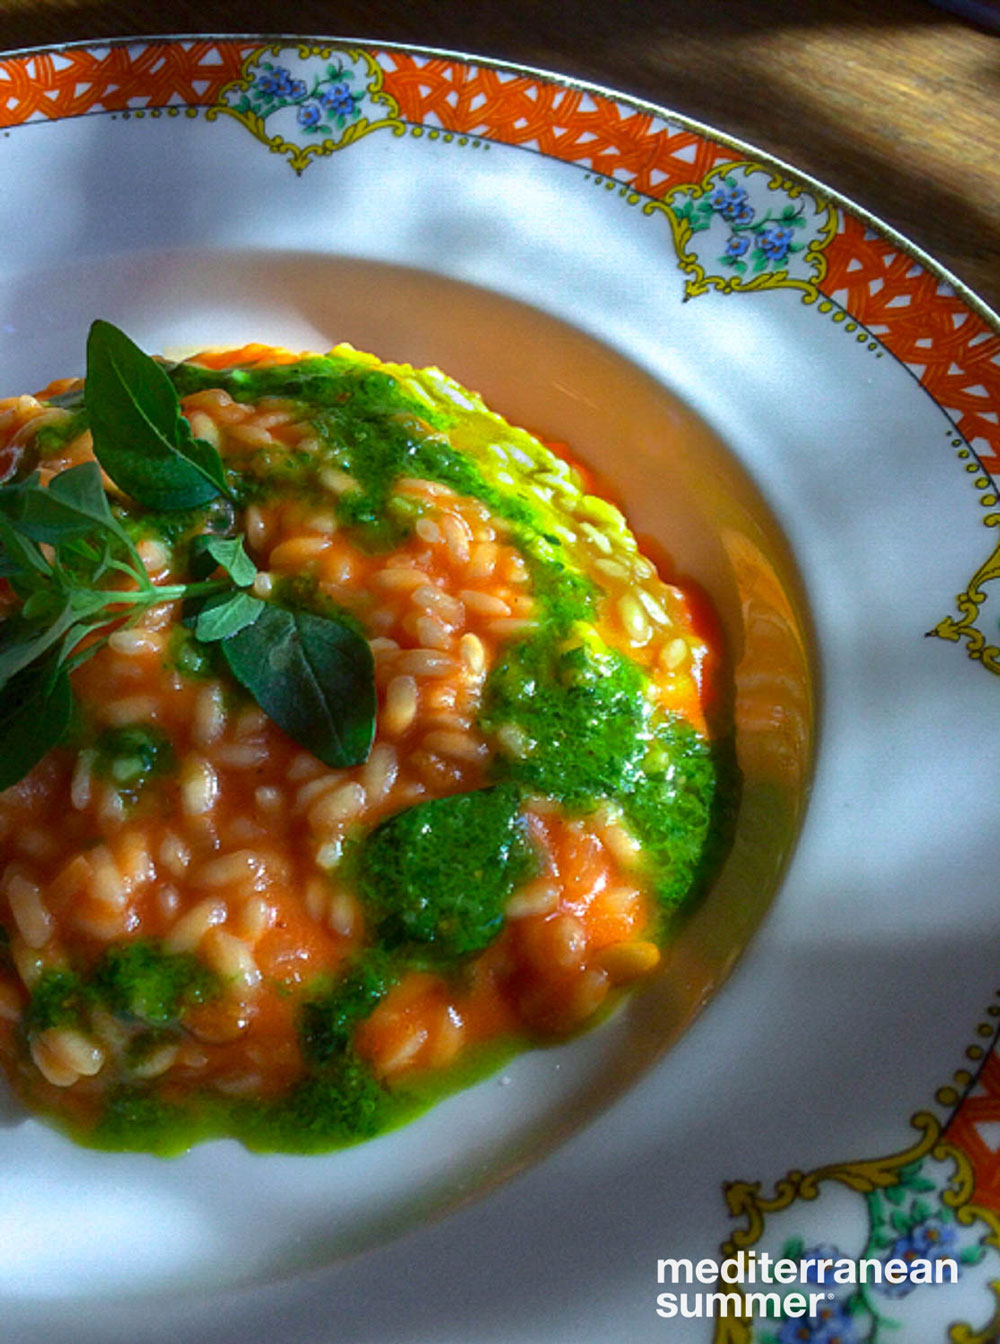 Tomato risotto with pistou at La Fenière, Lourmarin, France (Photo by David Shalleck)